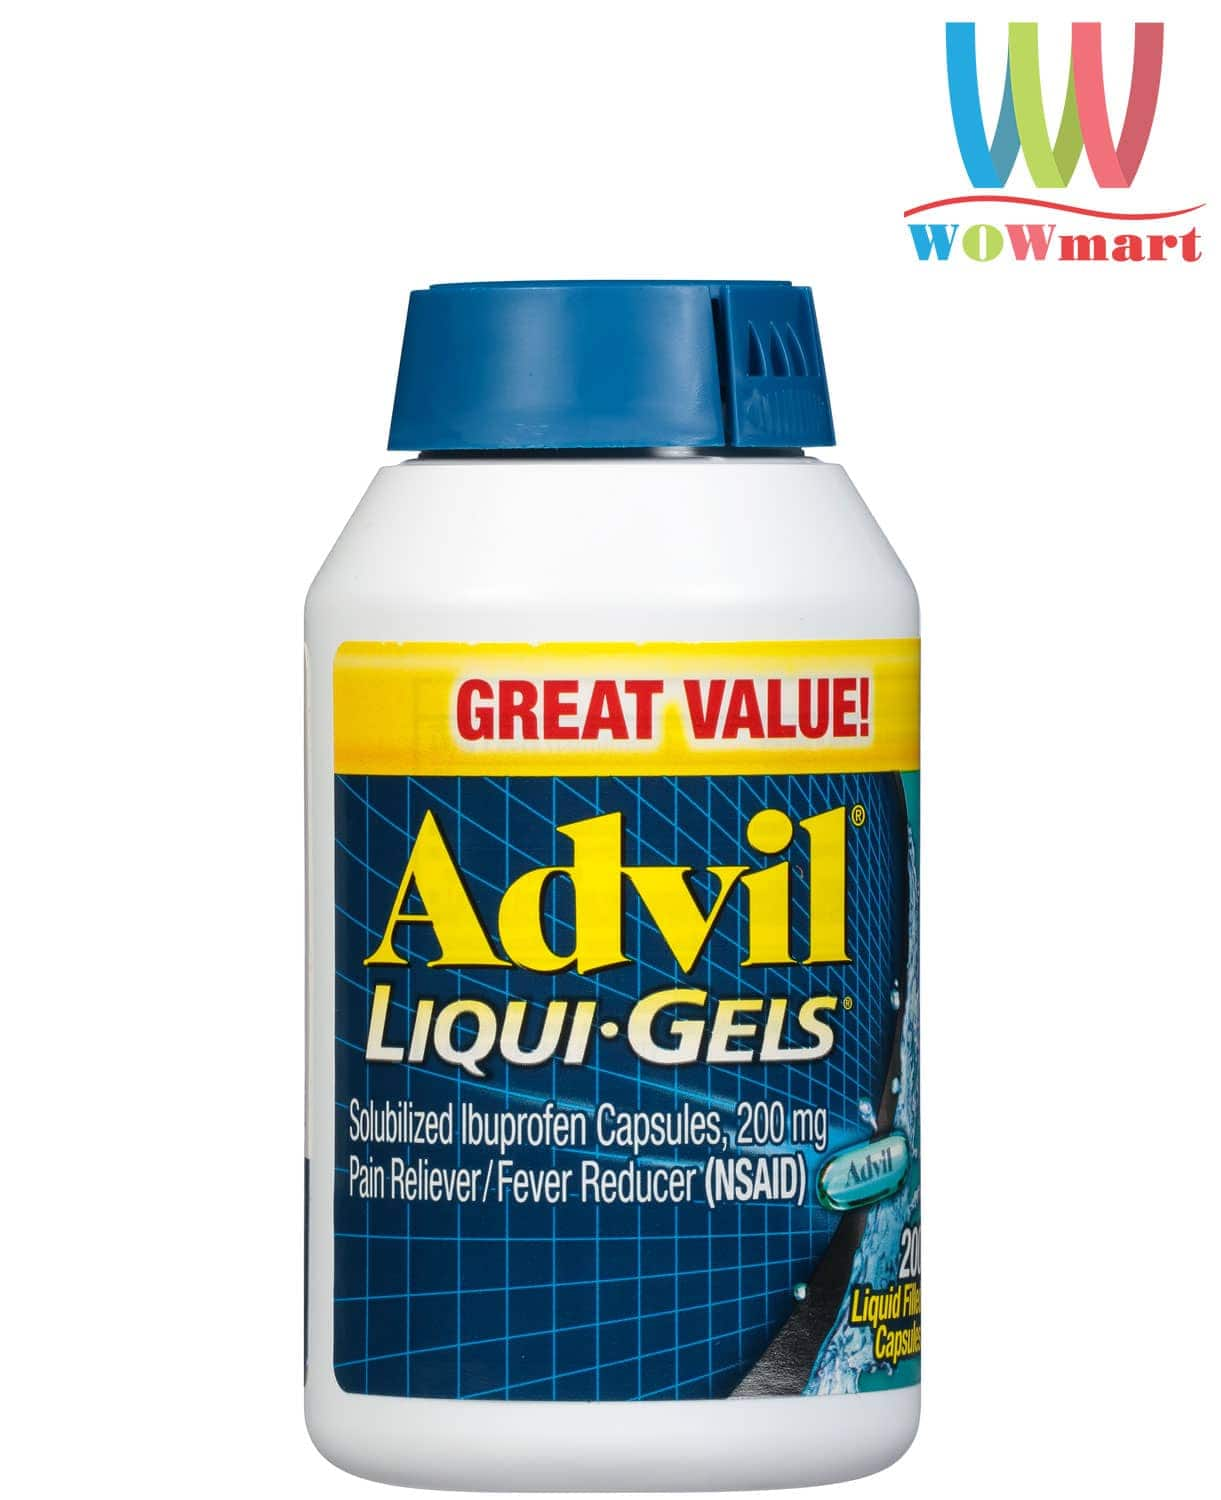 thuoc-advil-giam-dau-ha-sot-advil-liqui-gel-200mg-200-vien-2018